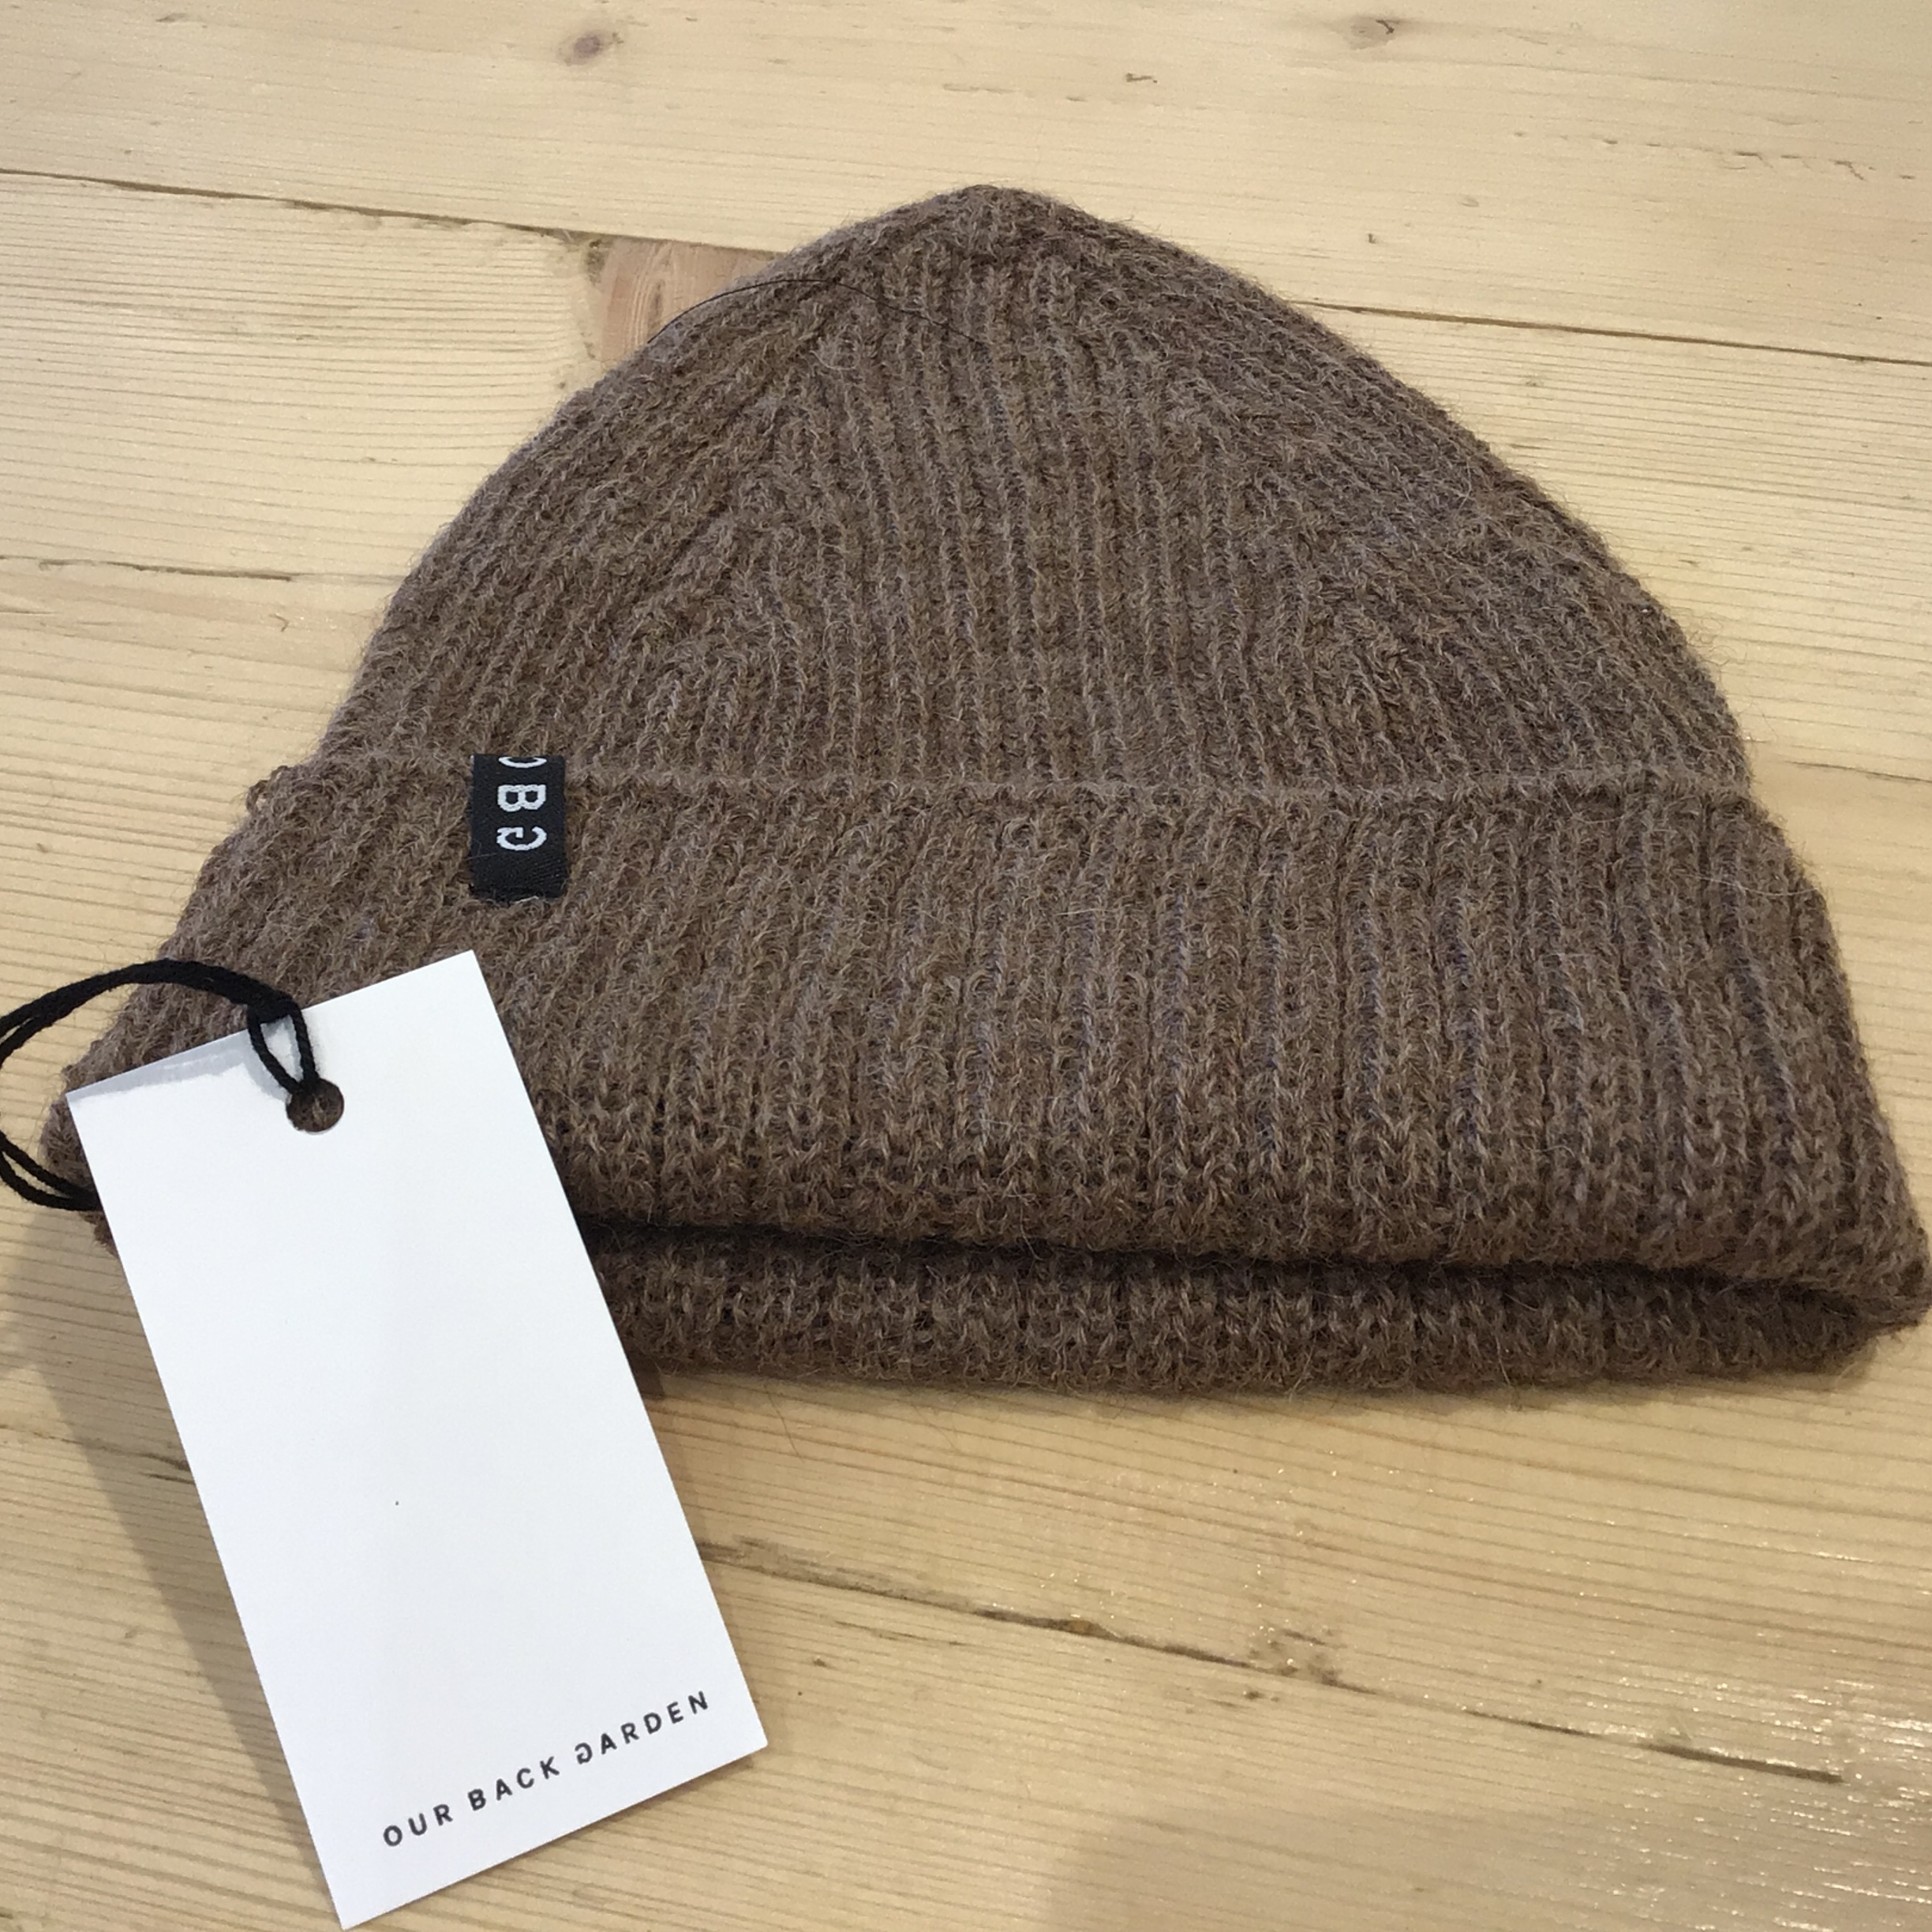 OBG - 100% Alpaca wool hat - Basic Rib Walnut Brown